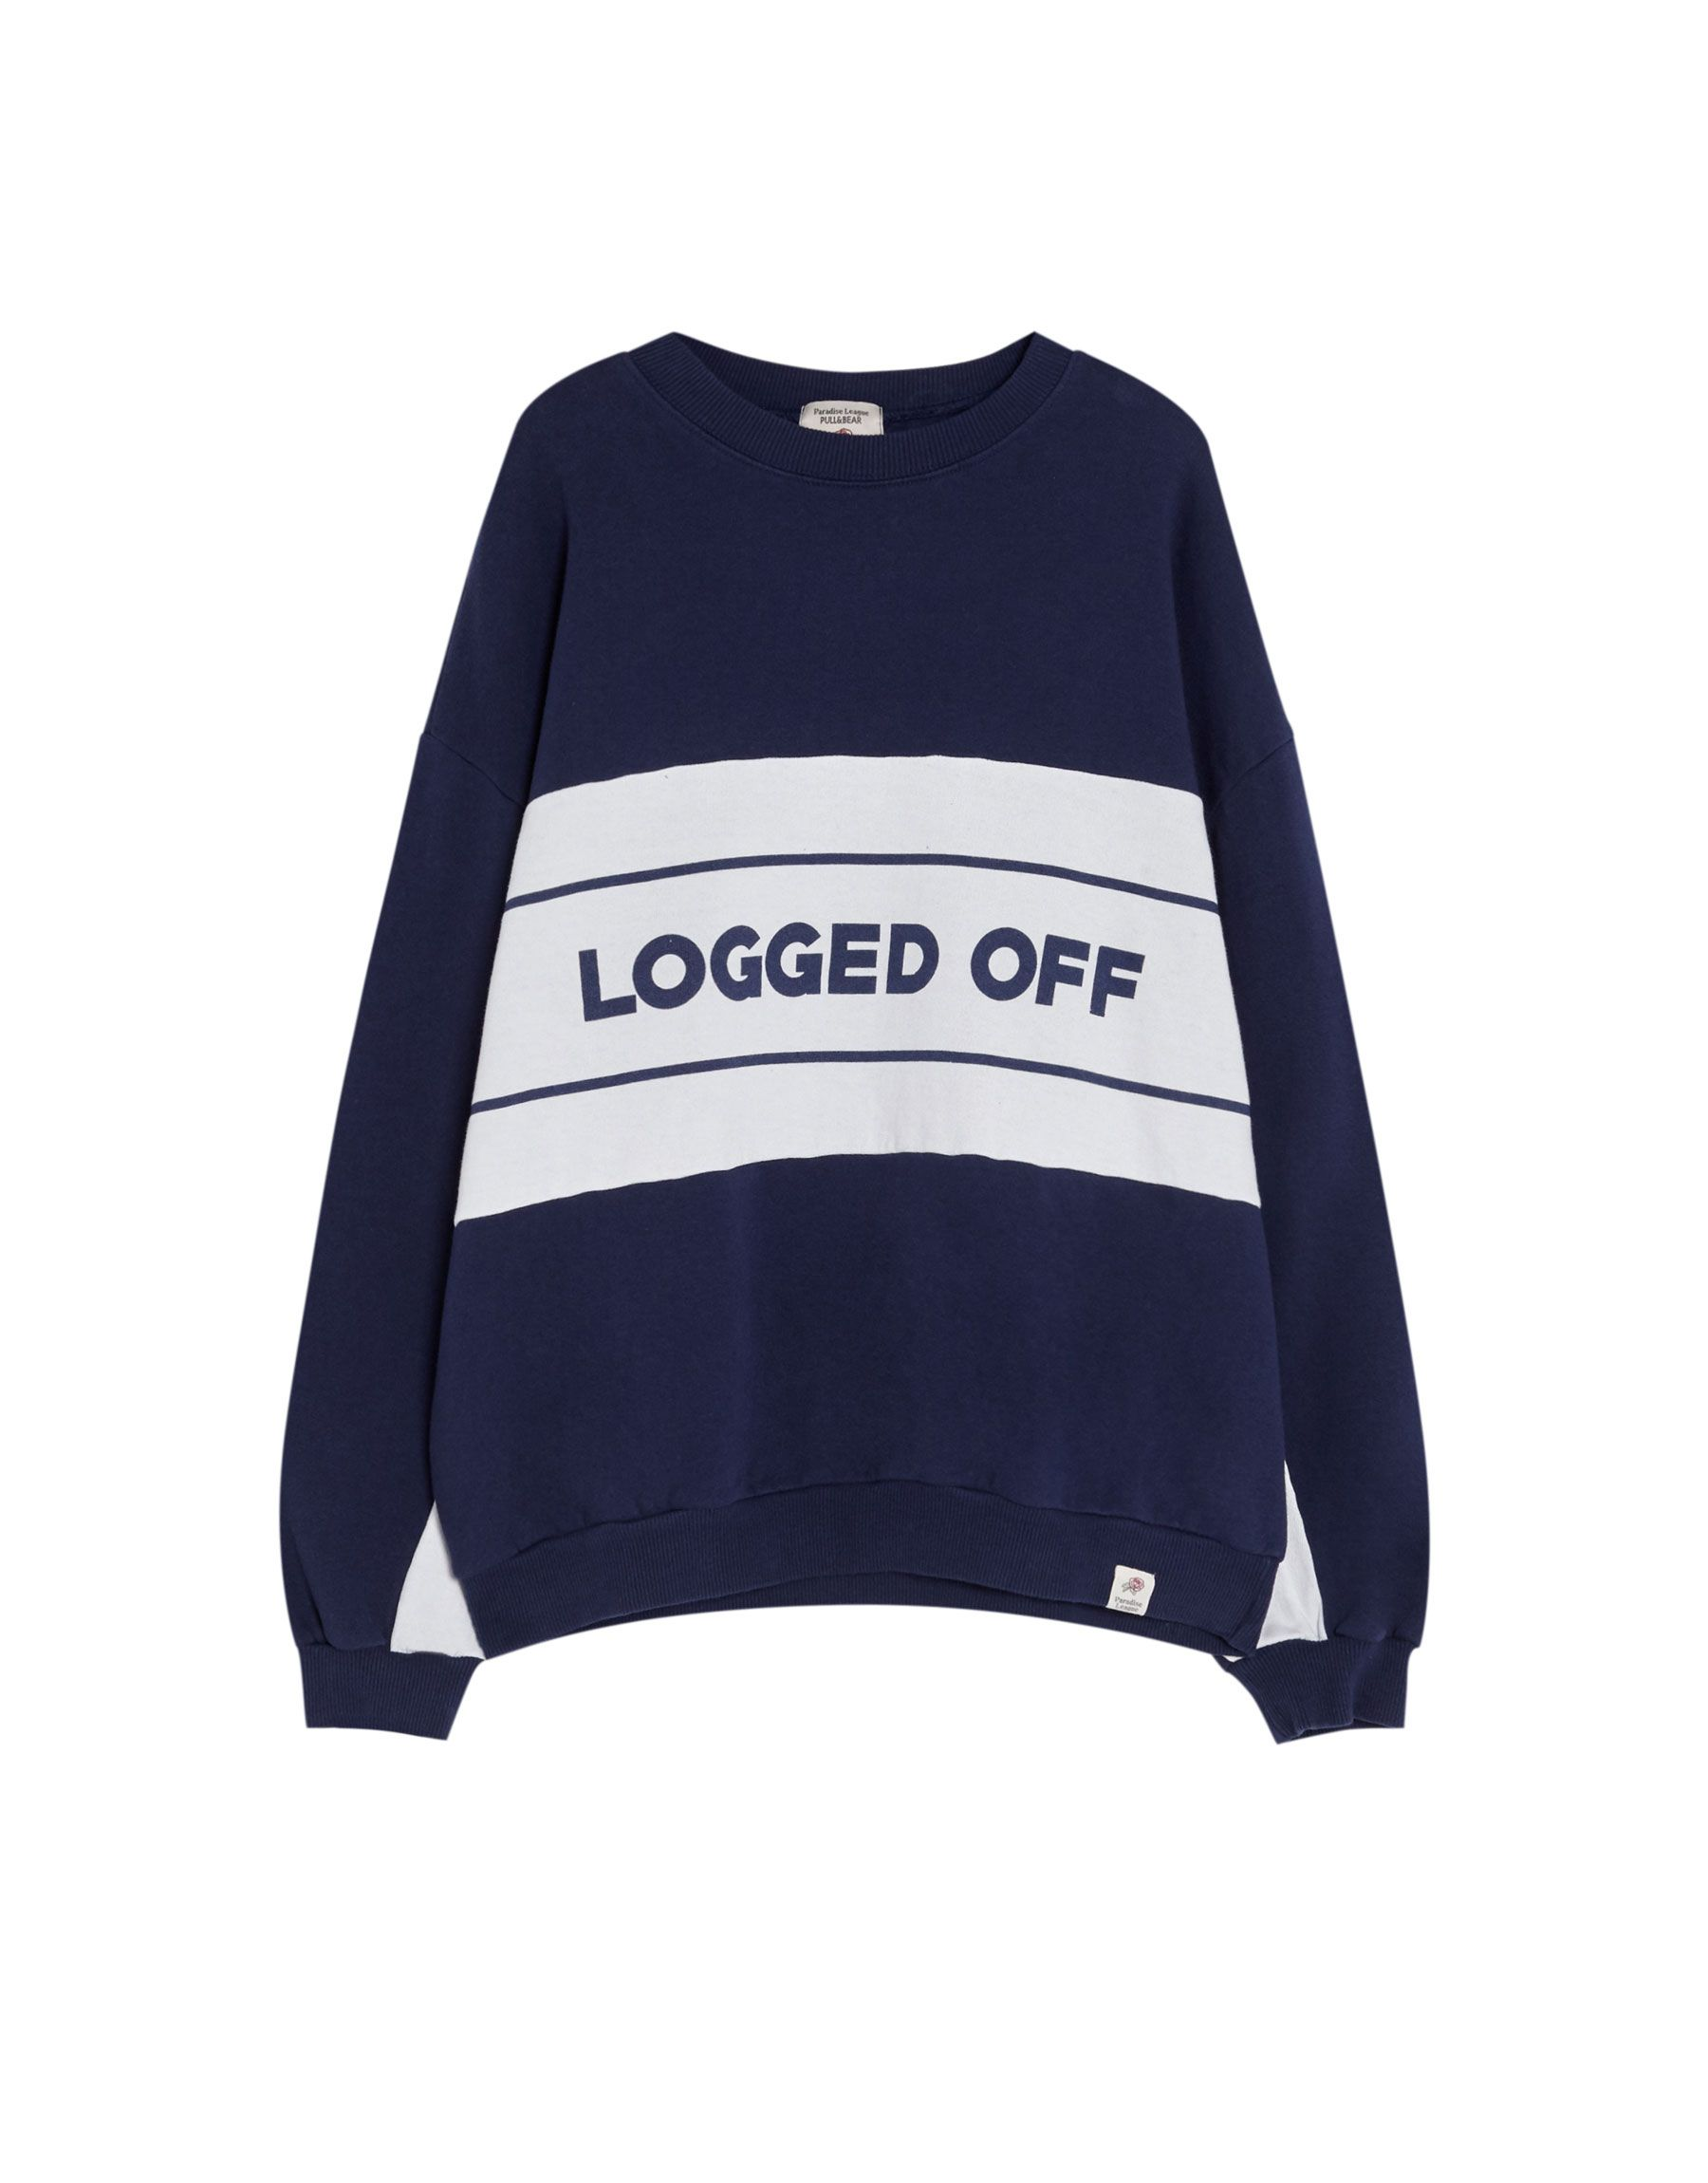 c6312a1f Sweatshirt with panels and slogan - Sweatshirts & Hoodies - Clothing -  Woman - PULL&BEAR United Kingdom